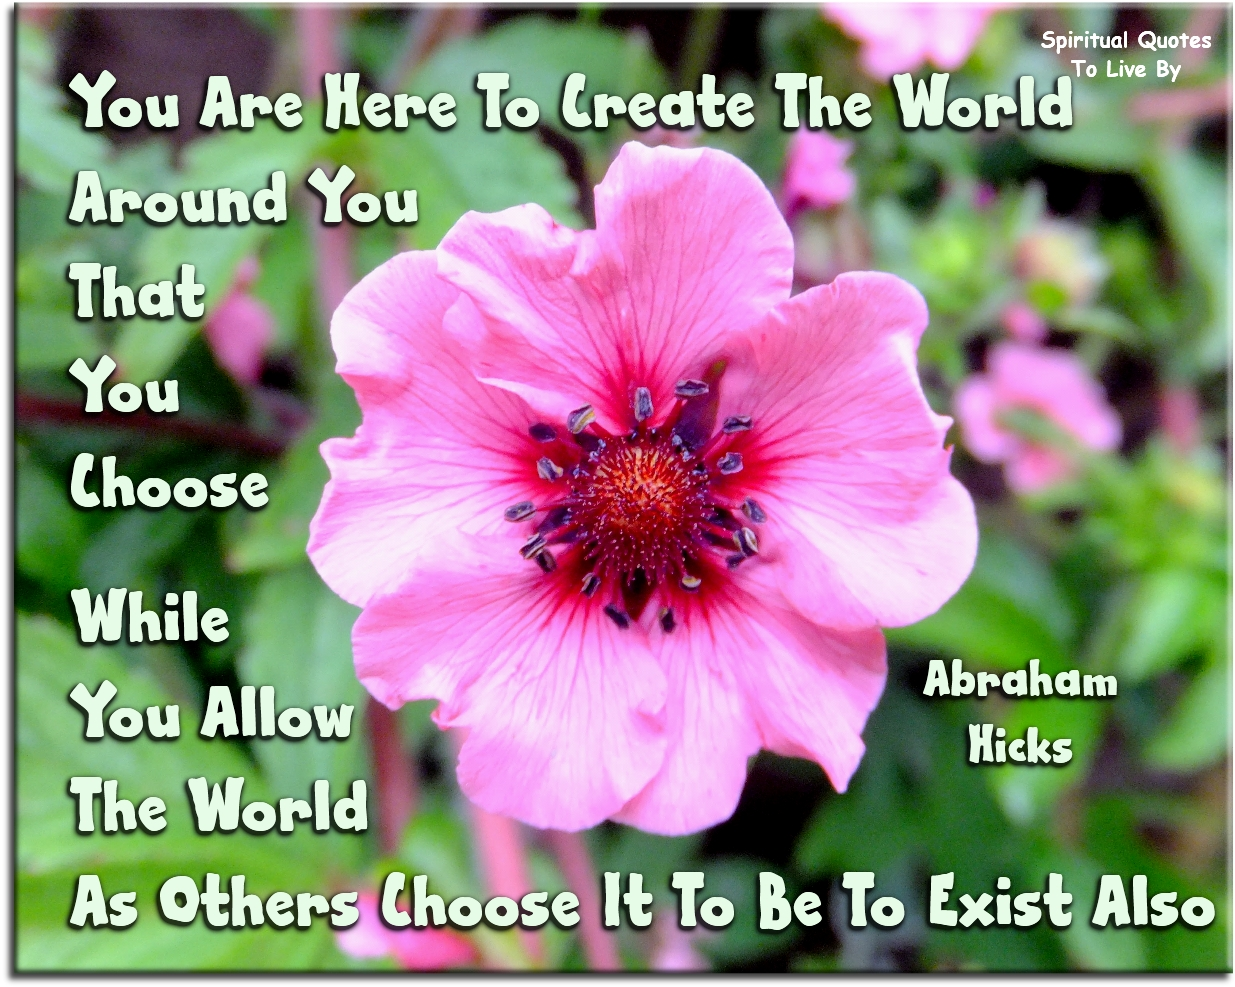 You are here to create the world around you that you choose, while you allow the world as others choose it to be to exist also - Abraham-Hicks - Spiritual Quotes To Live By